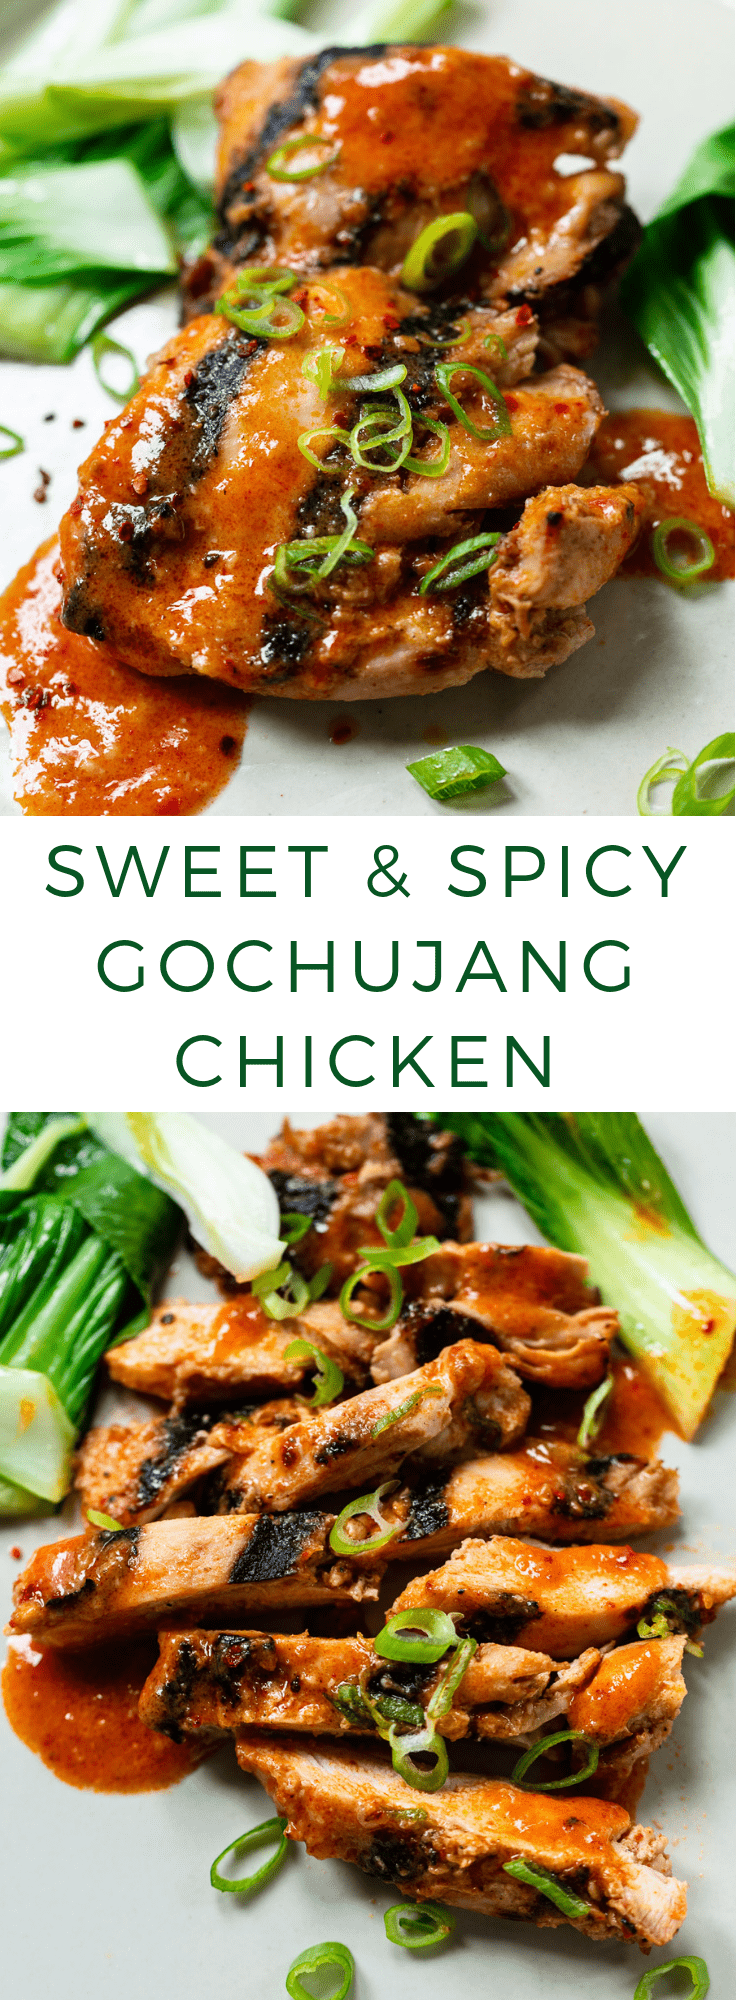 Easy Sweet and Spicy Gochujang Chicken #lowcarb #quick #dinner #healthy #korean #weeknight